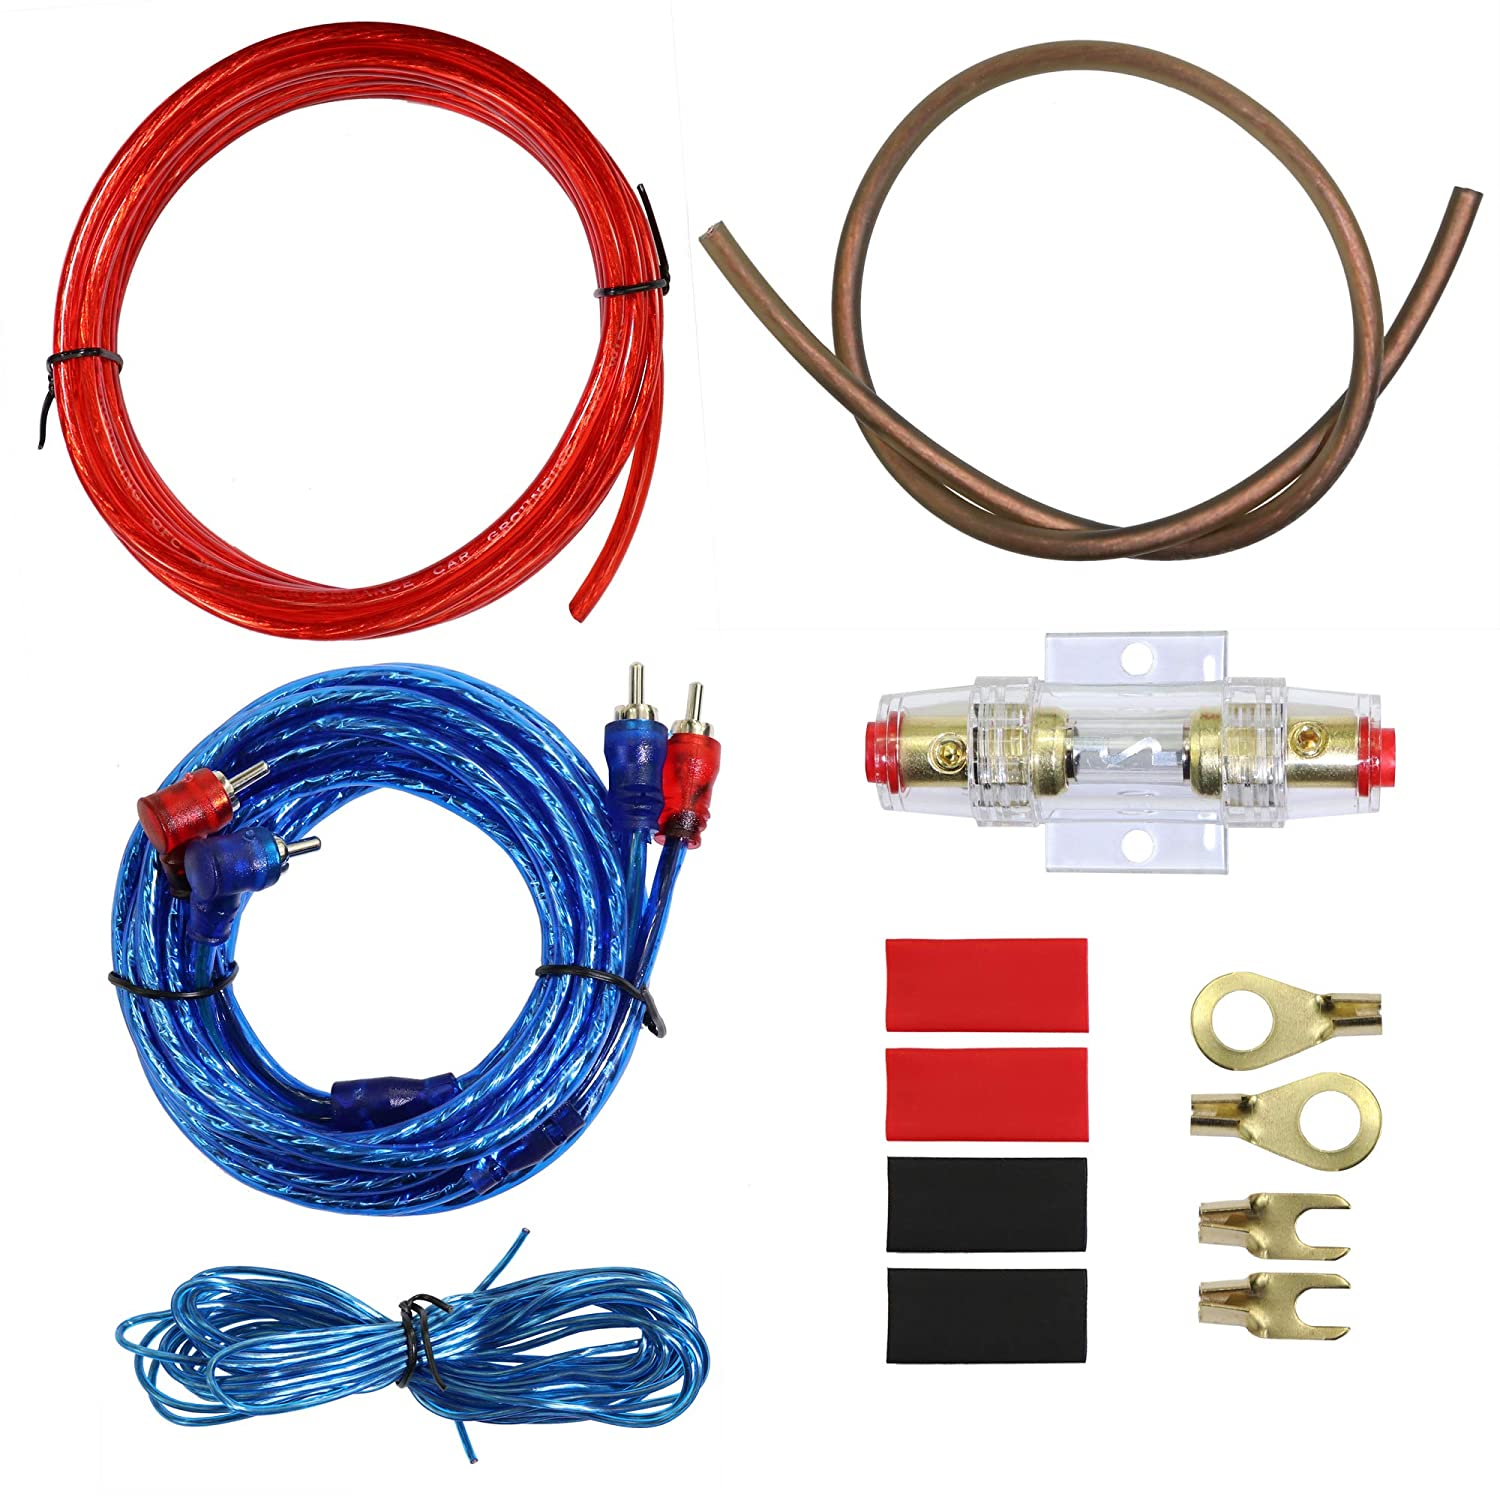 10 Gauge Car Amp Wiring Kit –Welugnal A Car Amplifier Install subwoofer Wire Wiring Kits Helps You Make Connections and Brings Power to Your Radio, Subwoofers and Speakers Amp Power Wire 81ErIzsghVL